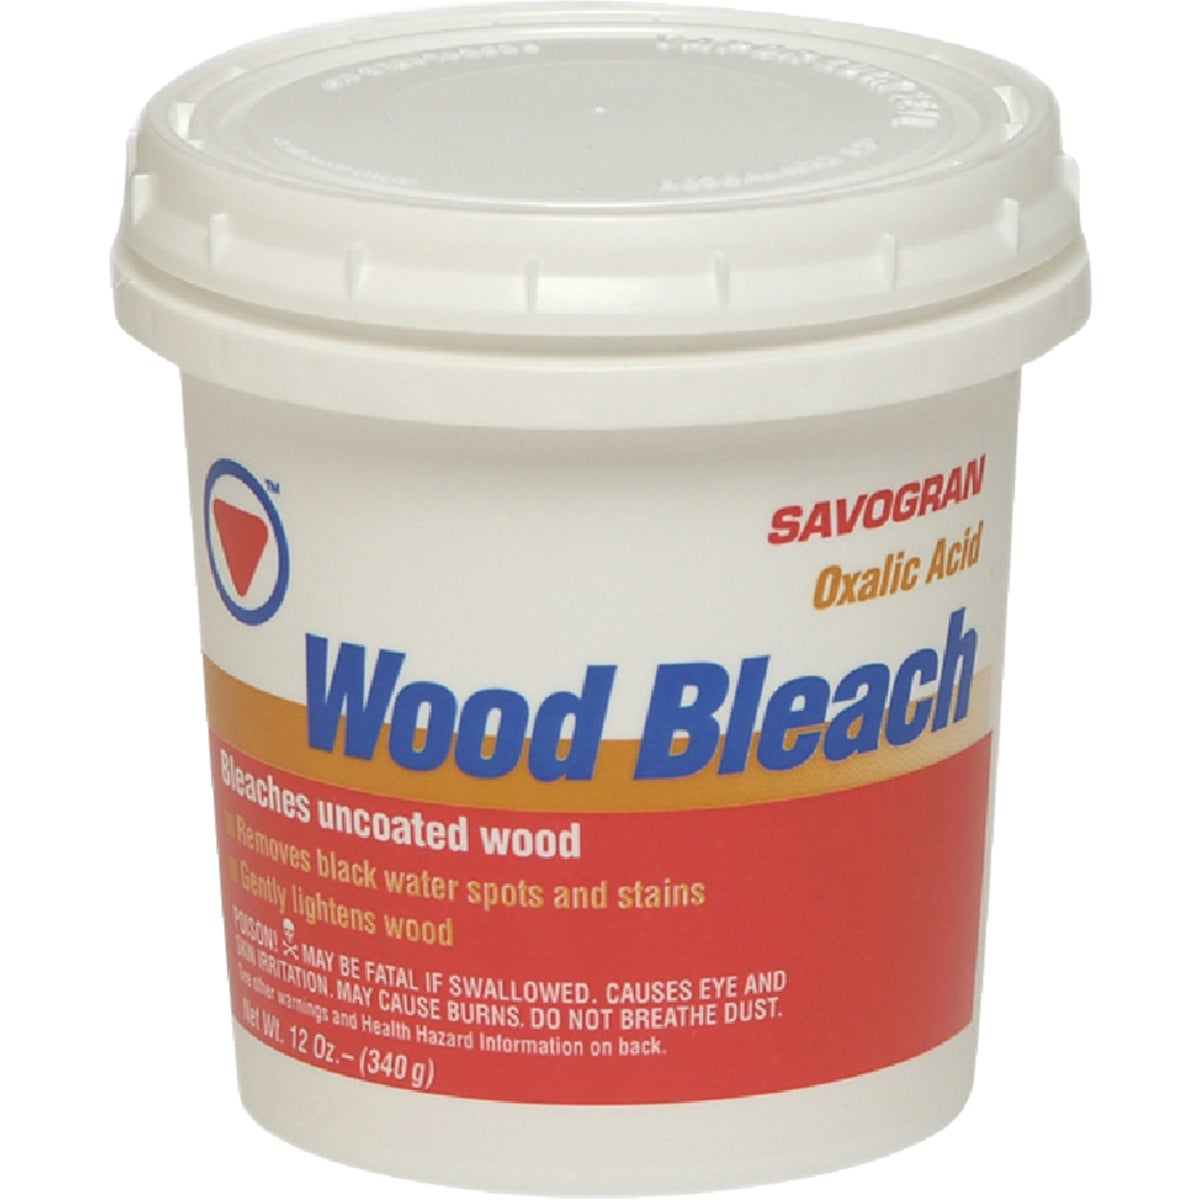 12OZ WOOD BLEACH - 10501 by Savogran Company